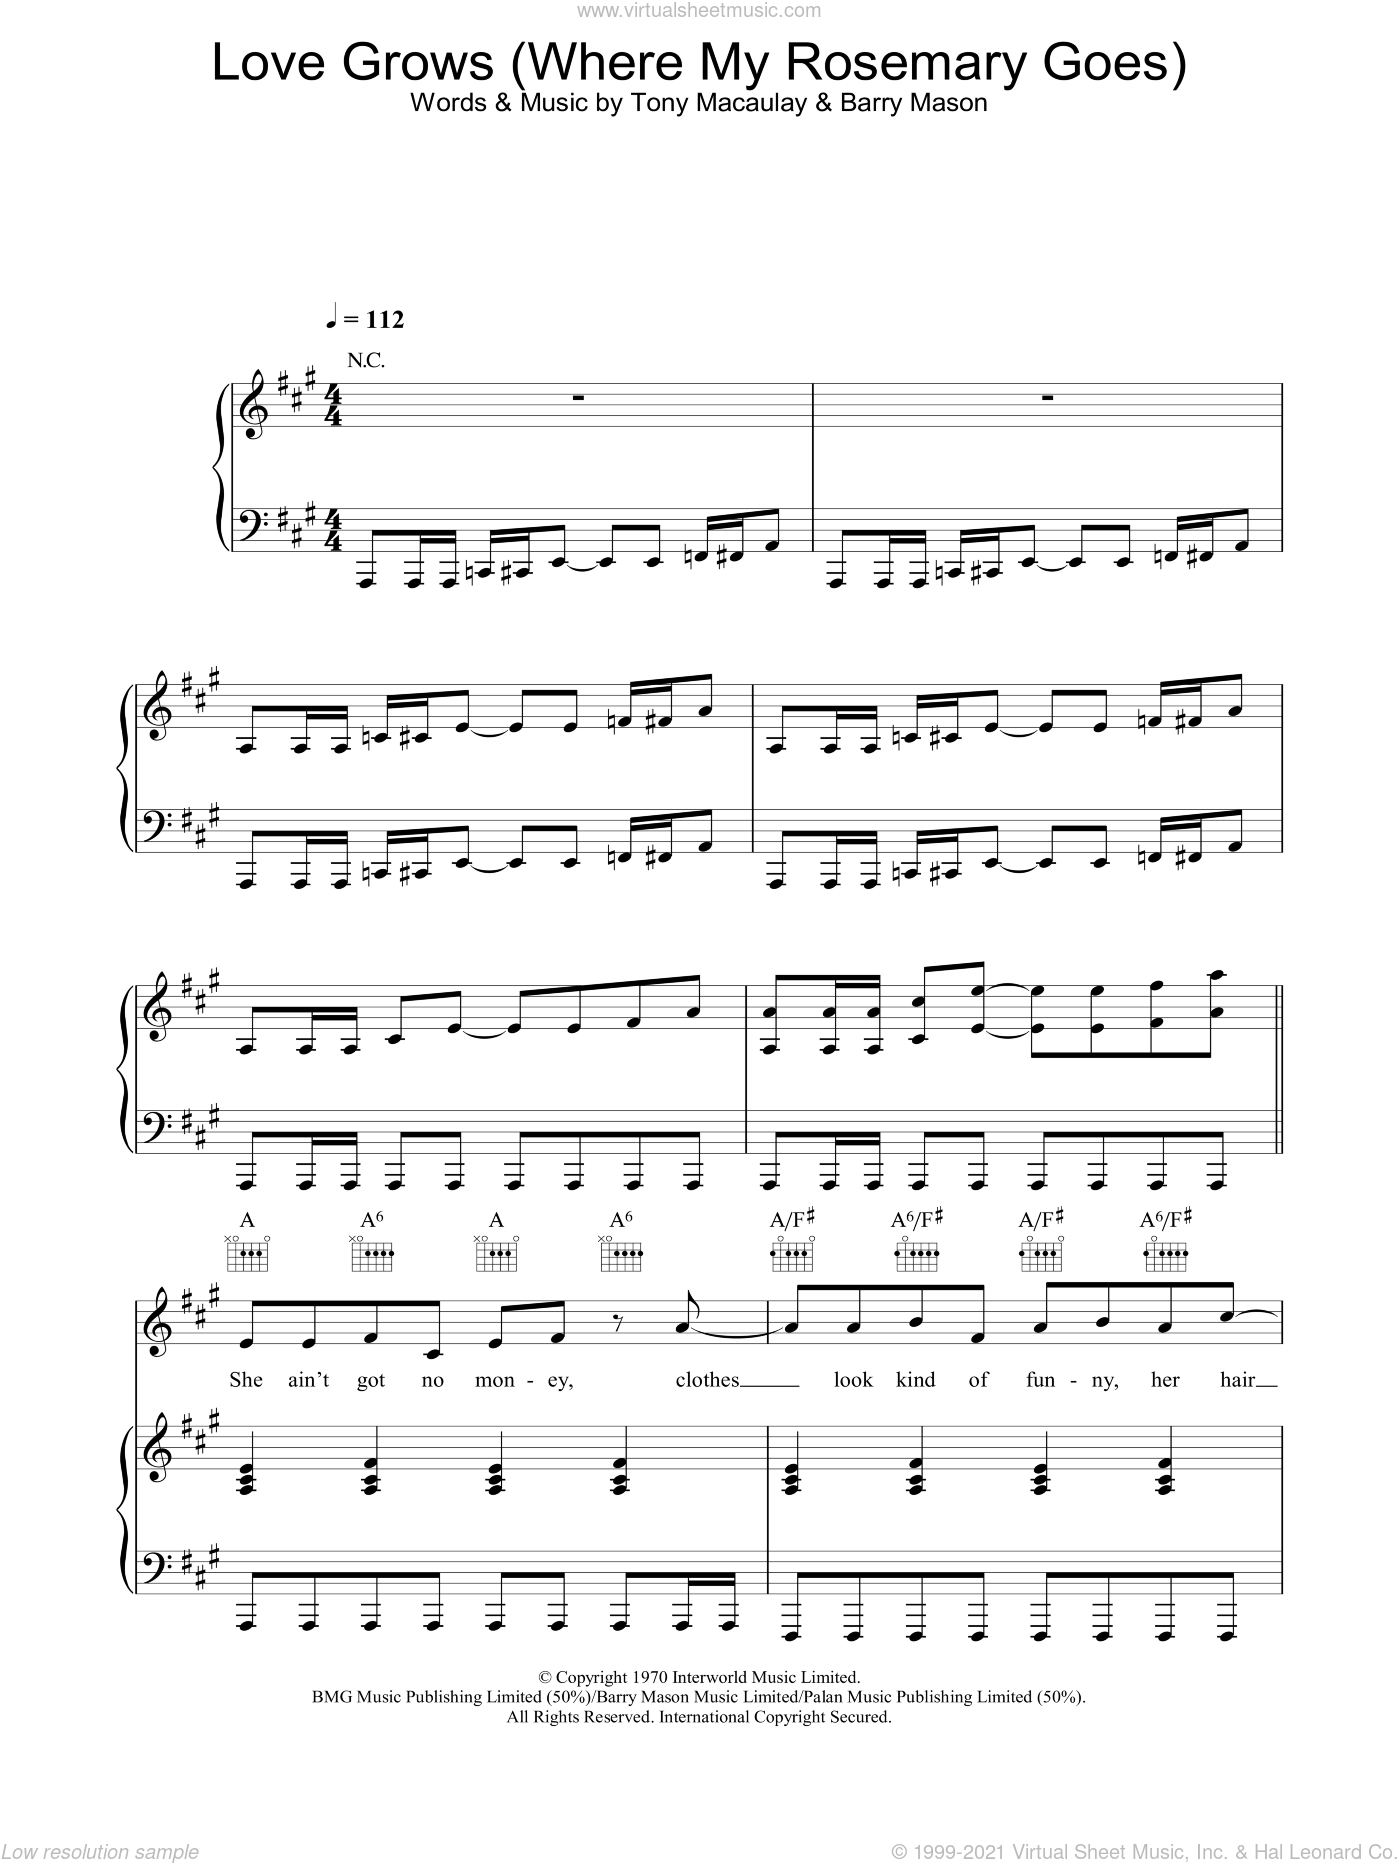 Love Grows (Where My Rosemary Goes) sheet music for voice, piano or guitar by Tony MacAuley